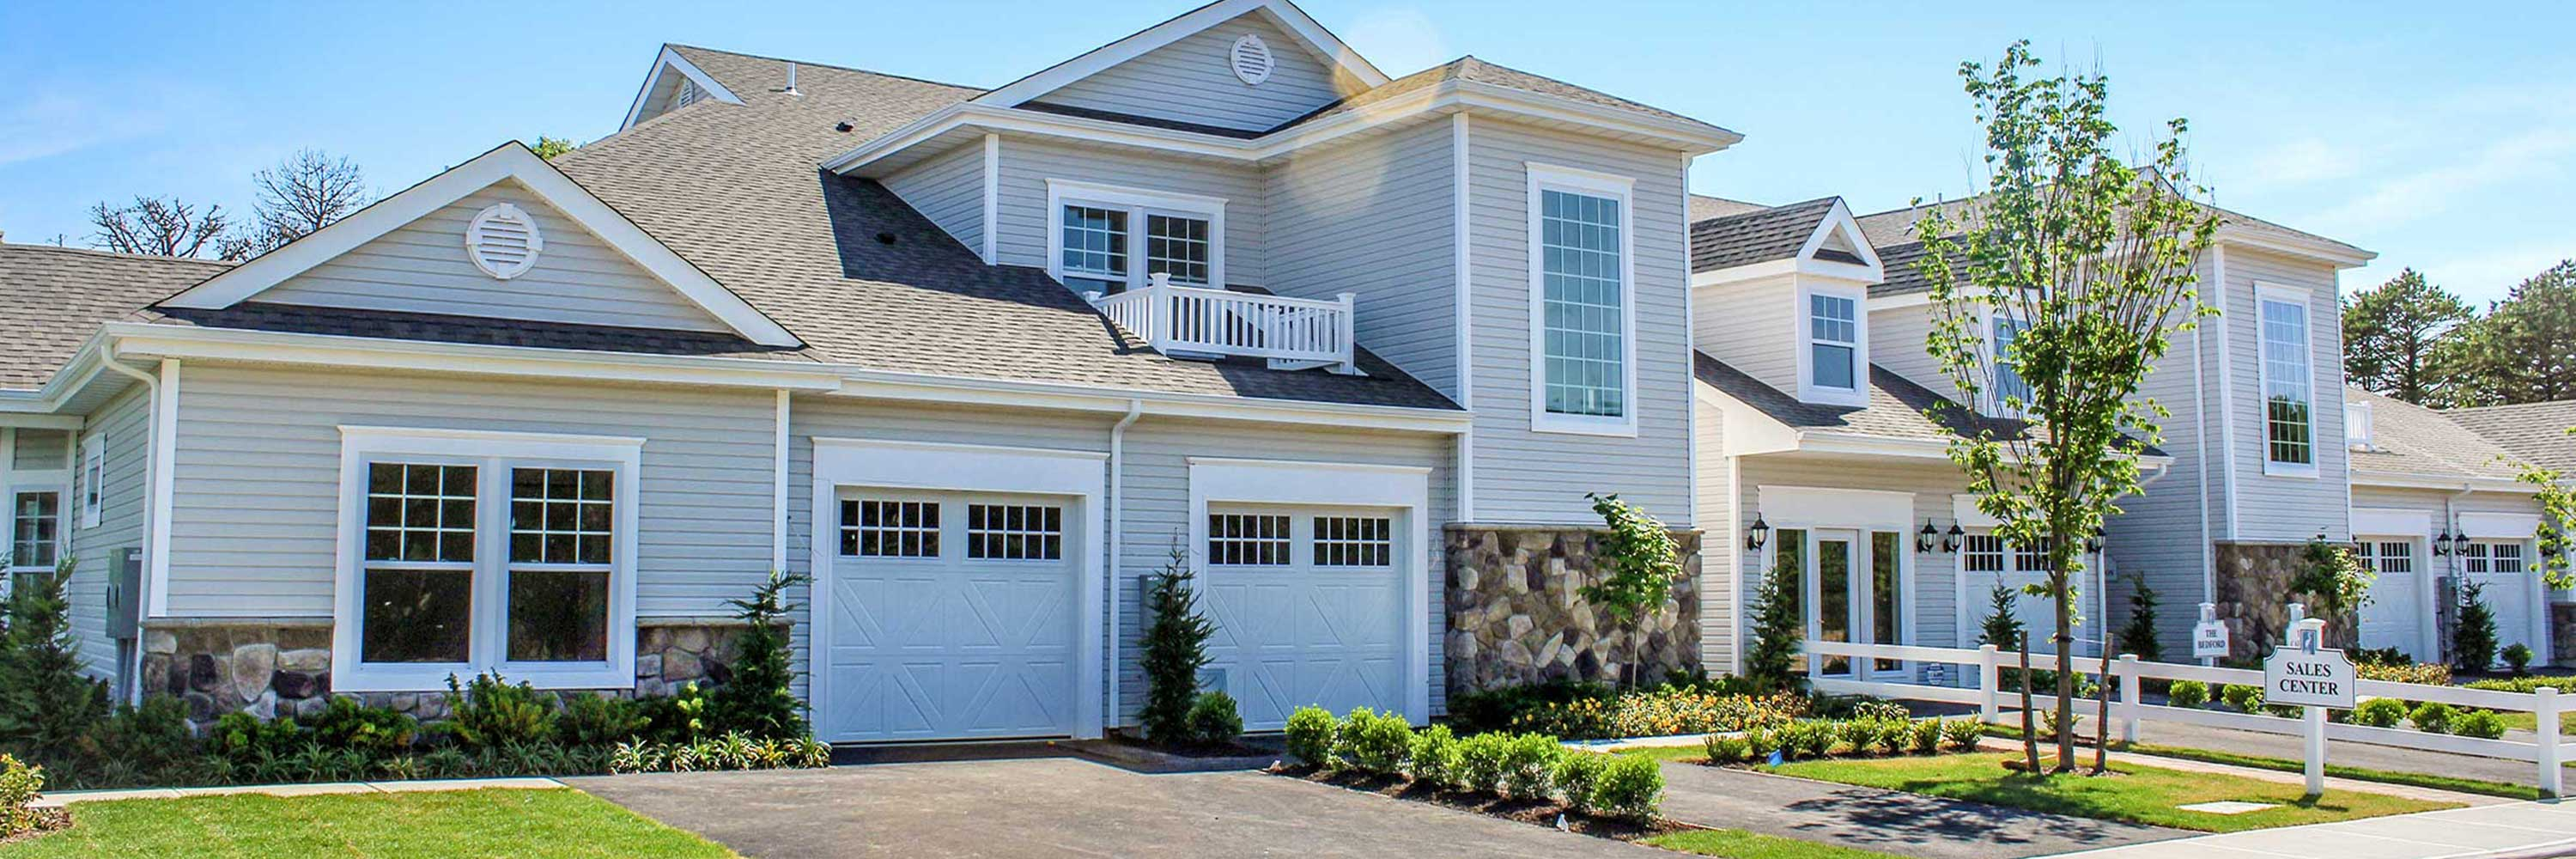 Garage For Sale Long Island Luxury Retirement Community The Manors At The Colony Preserve